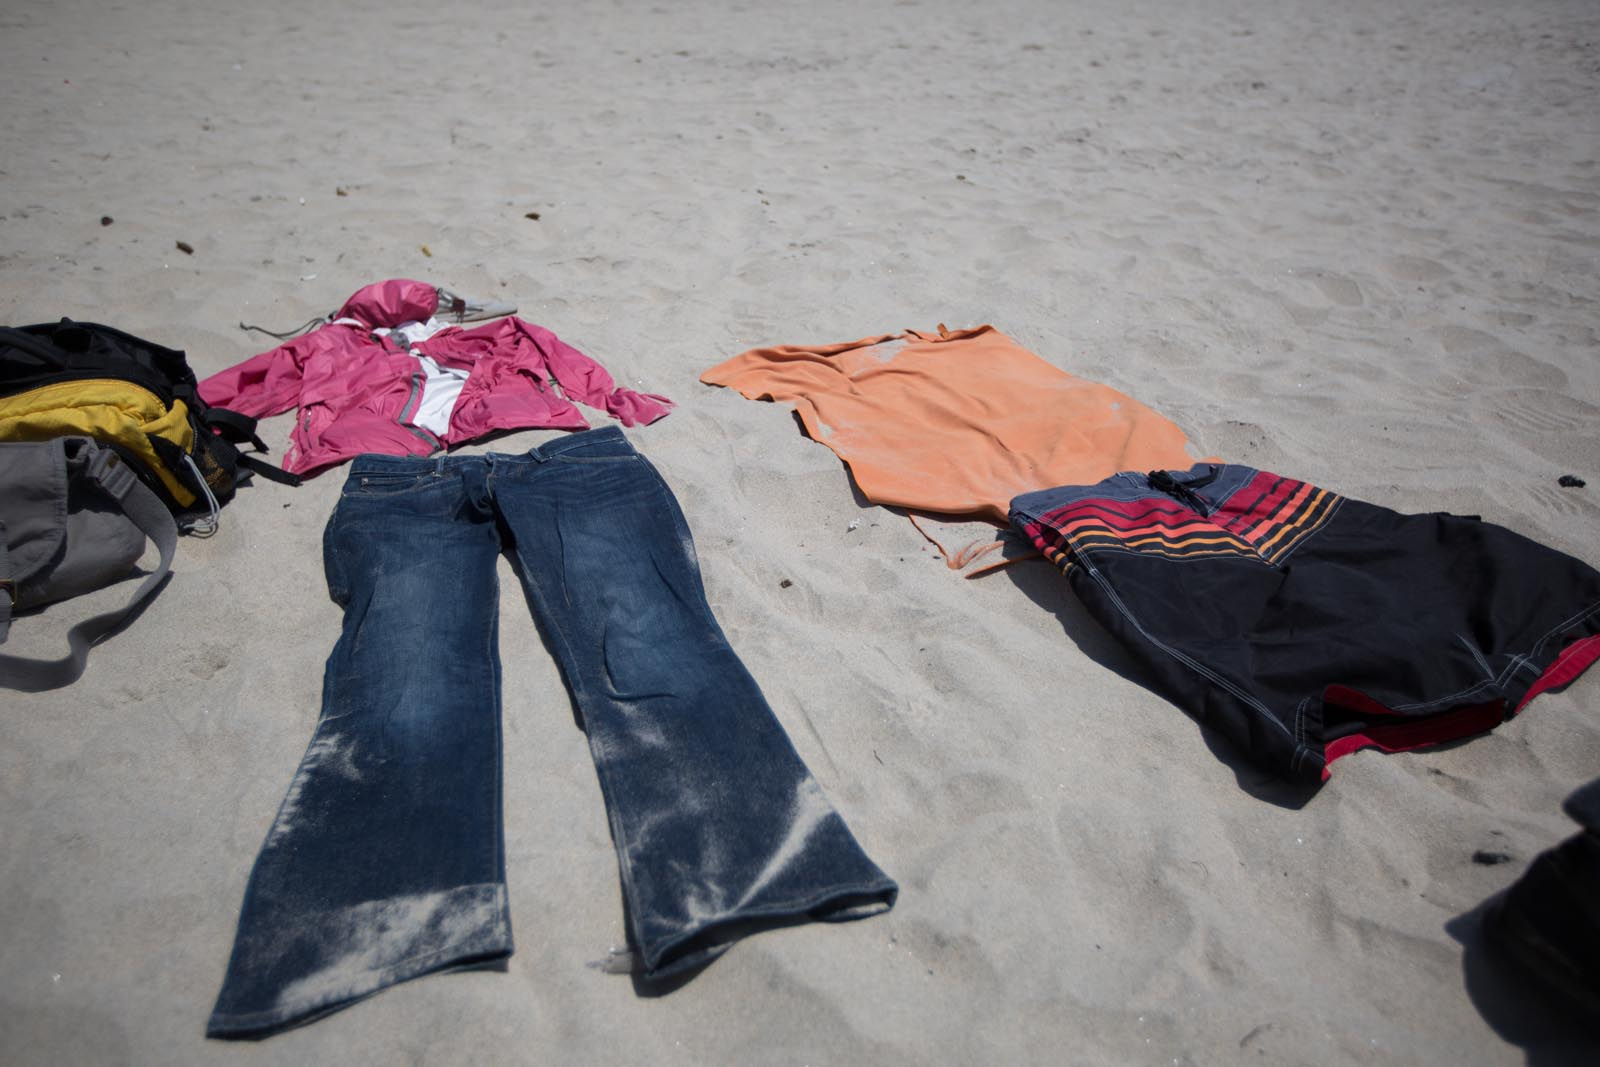 This is how you lay out on the beach with no beach towels in Rosarito.